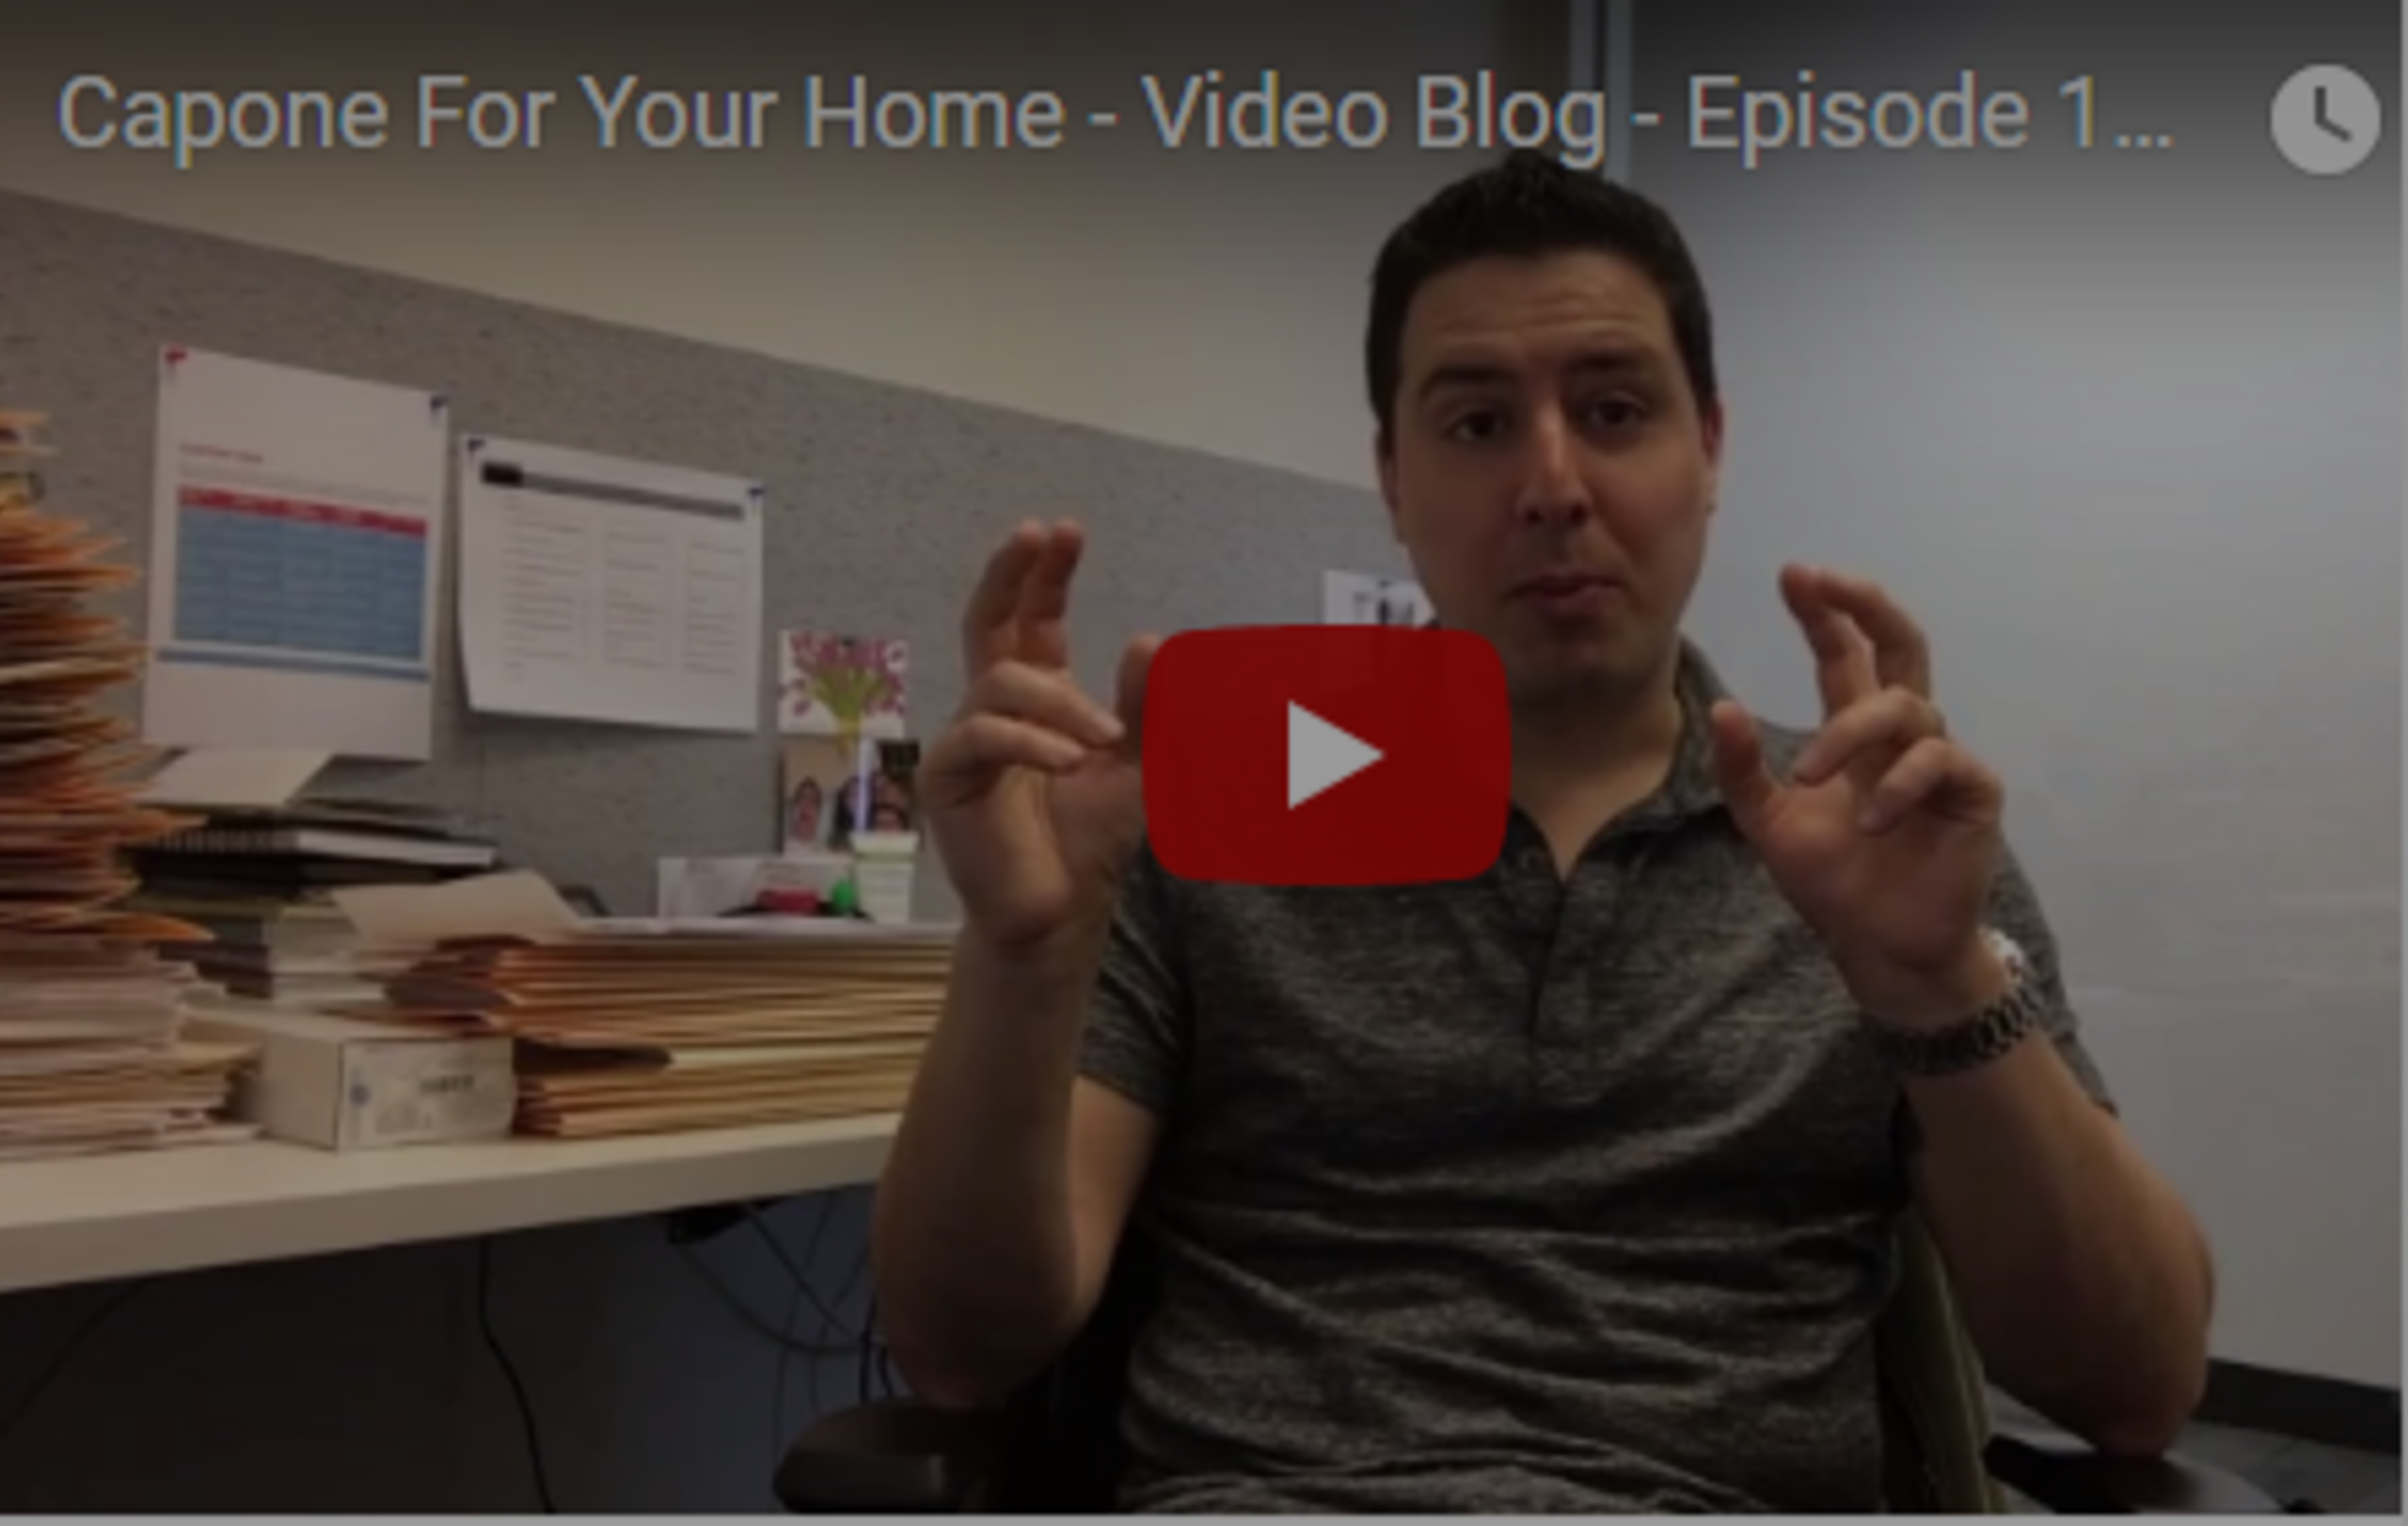 Video Blog – Episode 11: The Value Of A Local Realtor